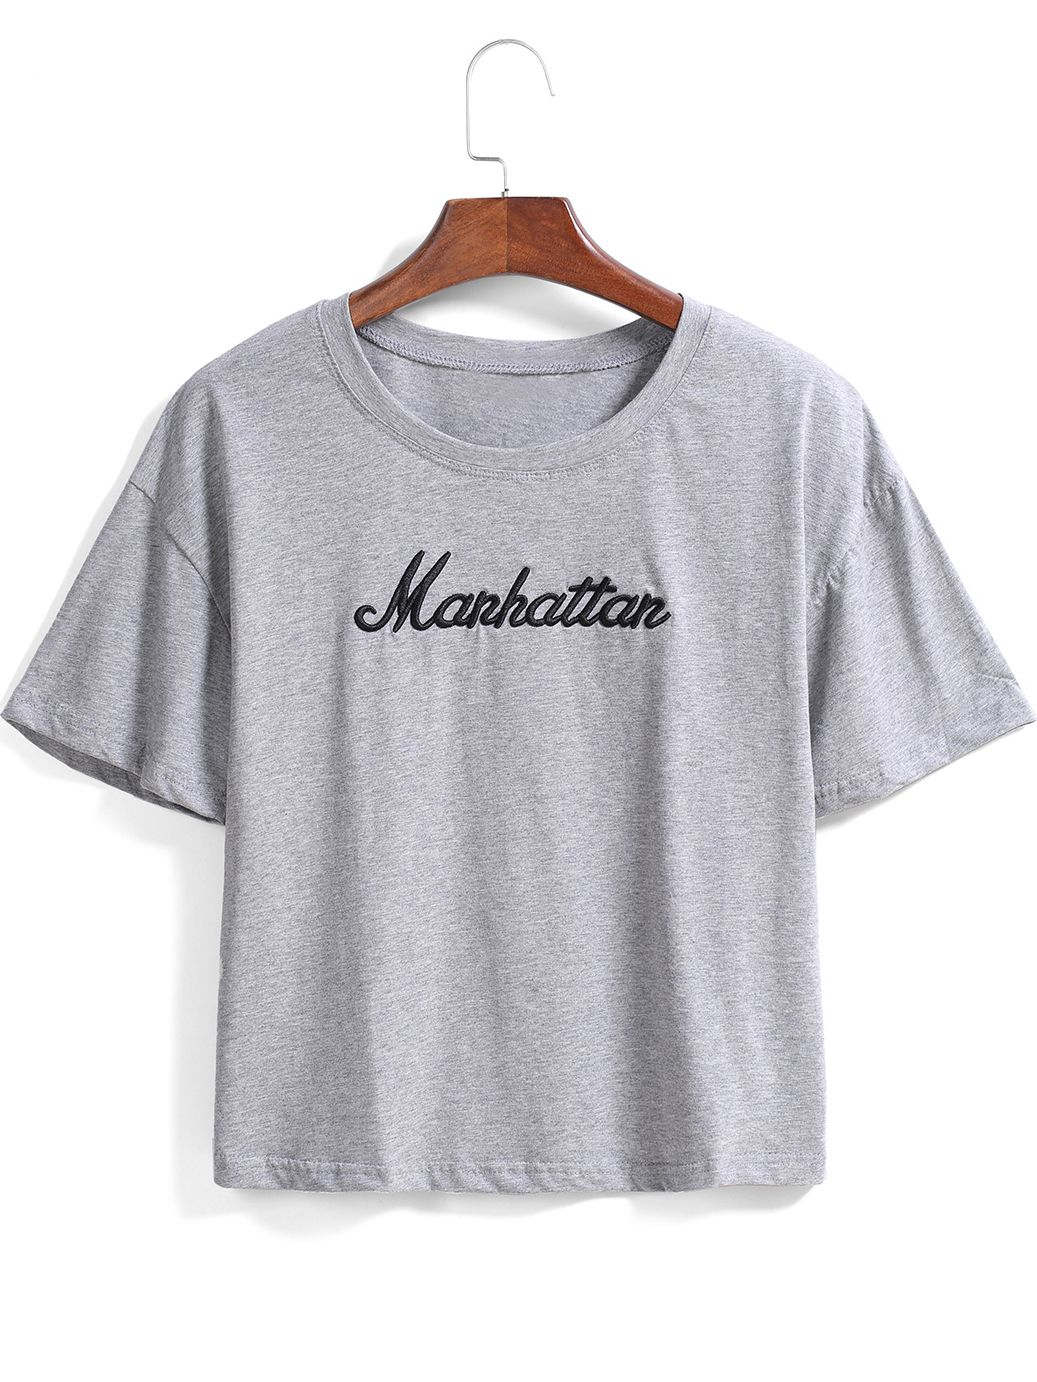 Grey Short Sleeve Manhattan Print Loose T Shirt 799 Threads And